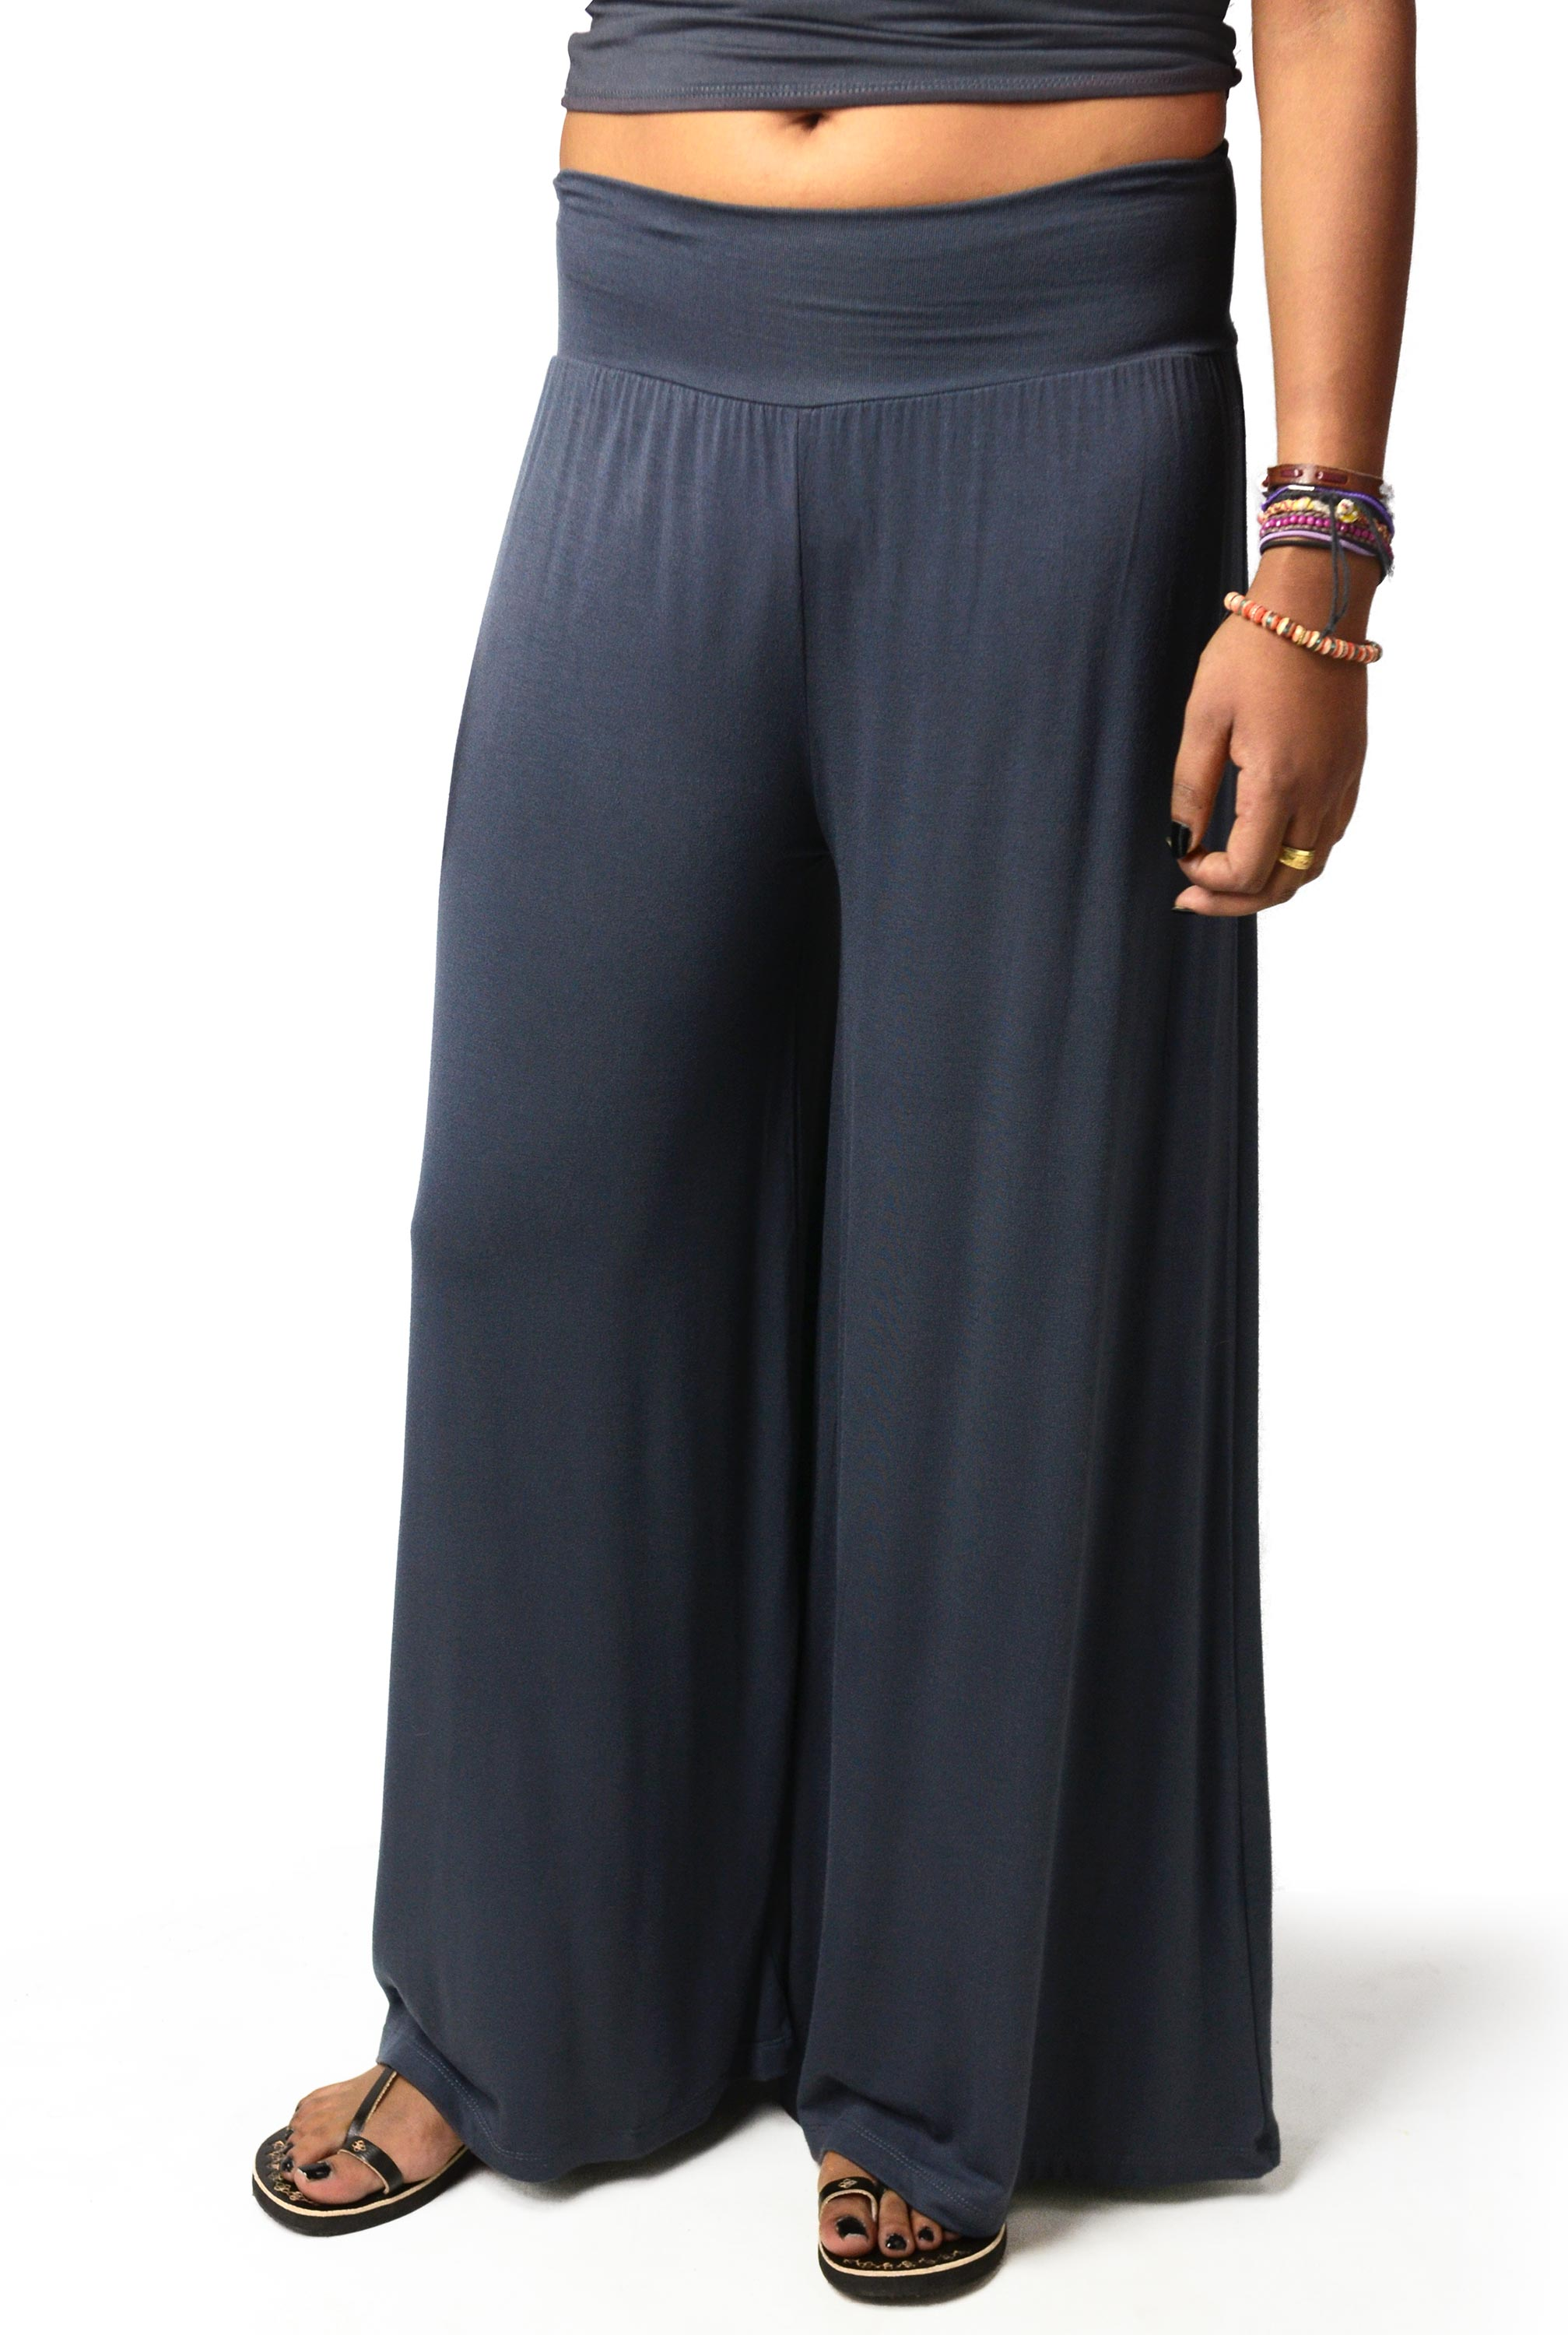 Wide Leg Pants, Solid Color, Grey - 2368-Y